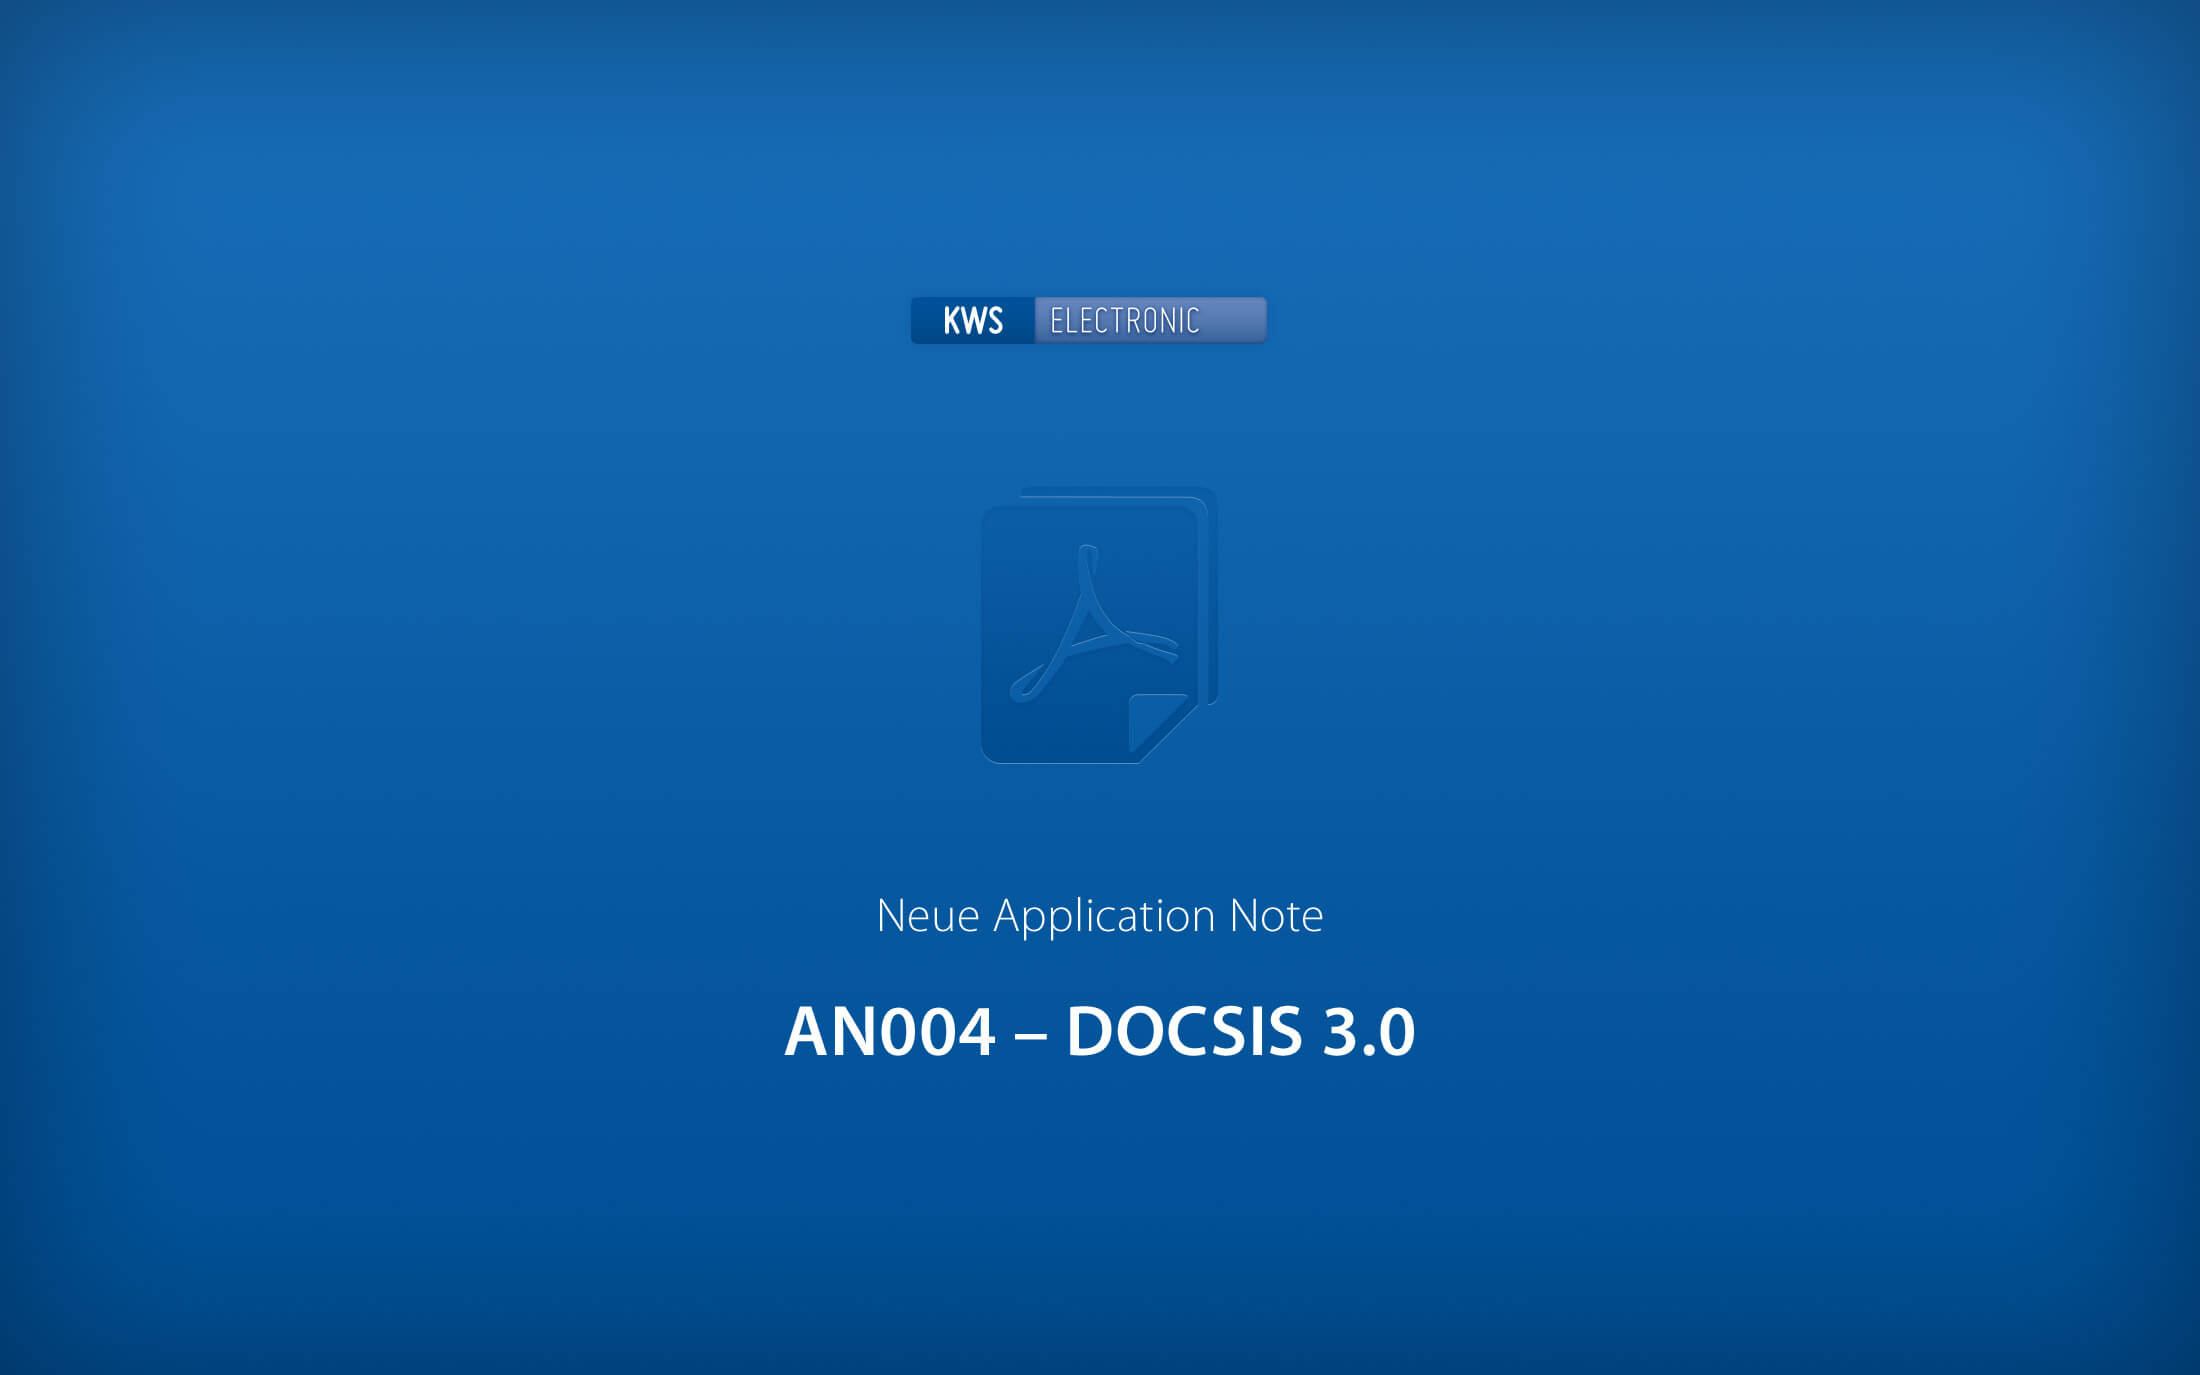 KWS-Electronic: Application Note DOCSIS 3.0